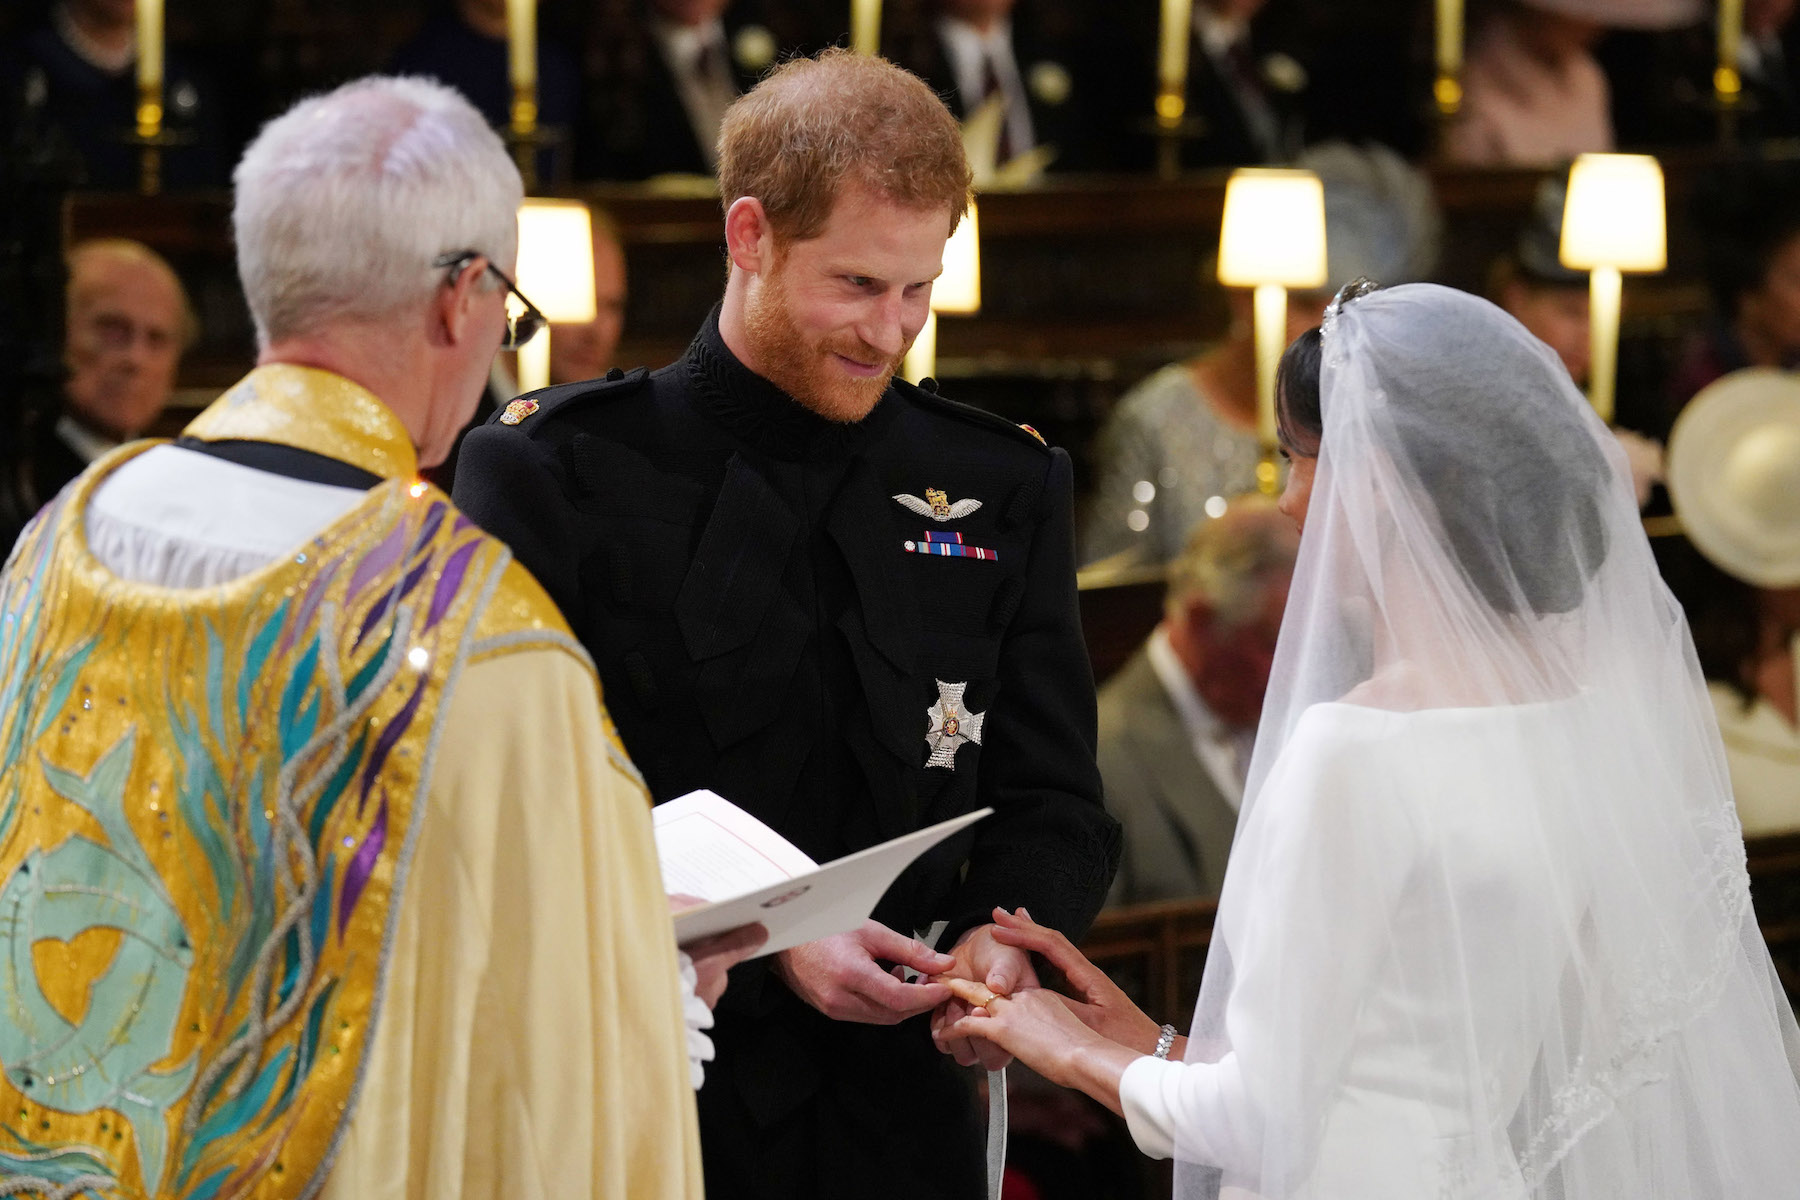 "<div class=""meta image-caption""><div class=""origin-logo origin-image wls""><span>wls</span></div><span class=""caption-text"">Prince Harry places the wedding ring on the finger of Meghan Markle during their wedding service, conducted by the Archbishop of Canterbury Justin Welby. (Jonathan Brady.Getty Images)</span></div>"